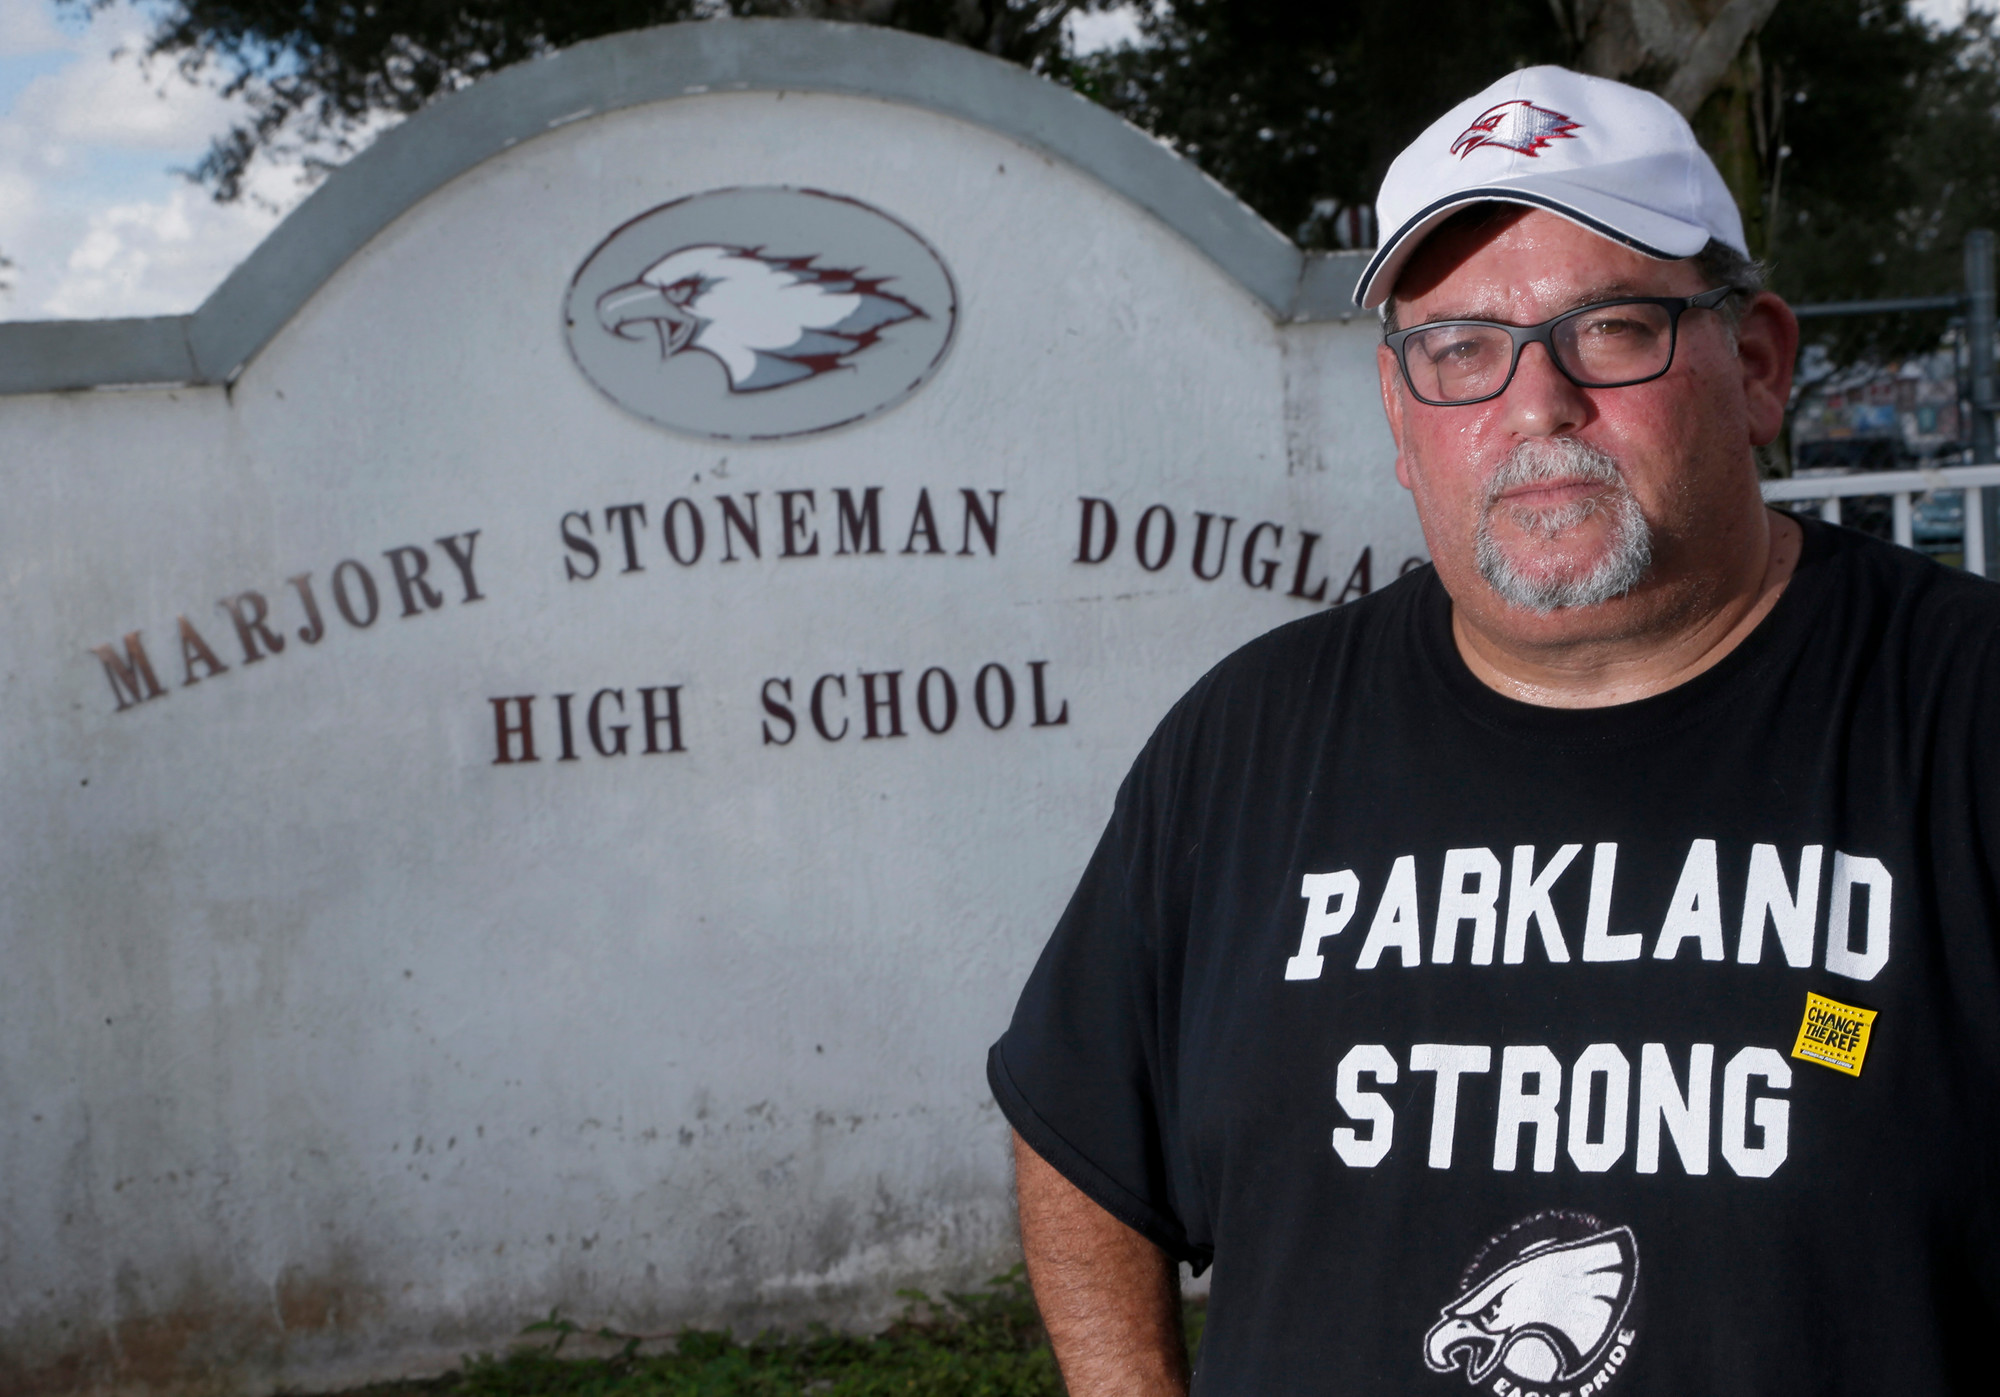 "Stephen Feuerman stands in front of the Marjory Stoneman Douglas High School sign in Parkland, Florida, recently. On 9/11, Stephen Feuerman saw the World Trade Center aflame through the window of his Empire State Building office. Feuerman had always seen himself as a New Yorker, but ""everything changed that day,"" he says."